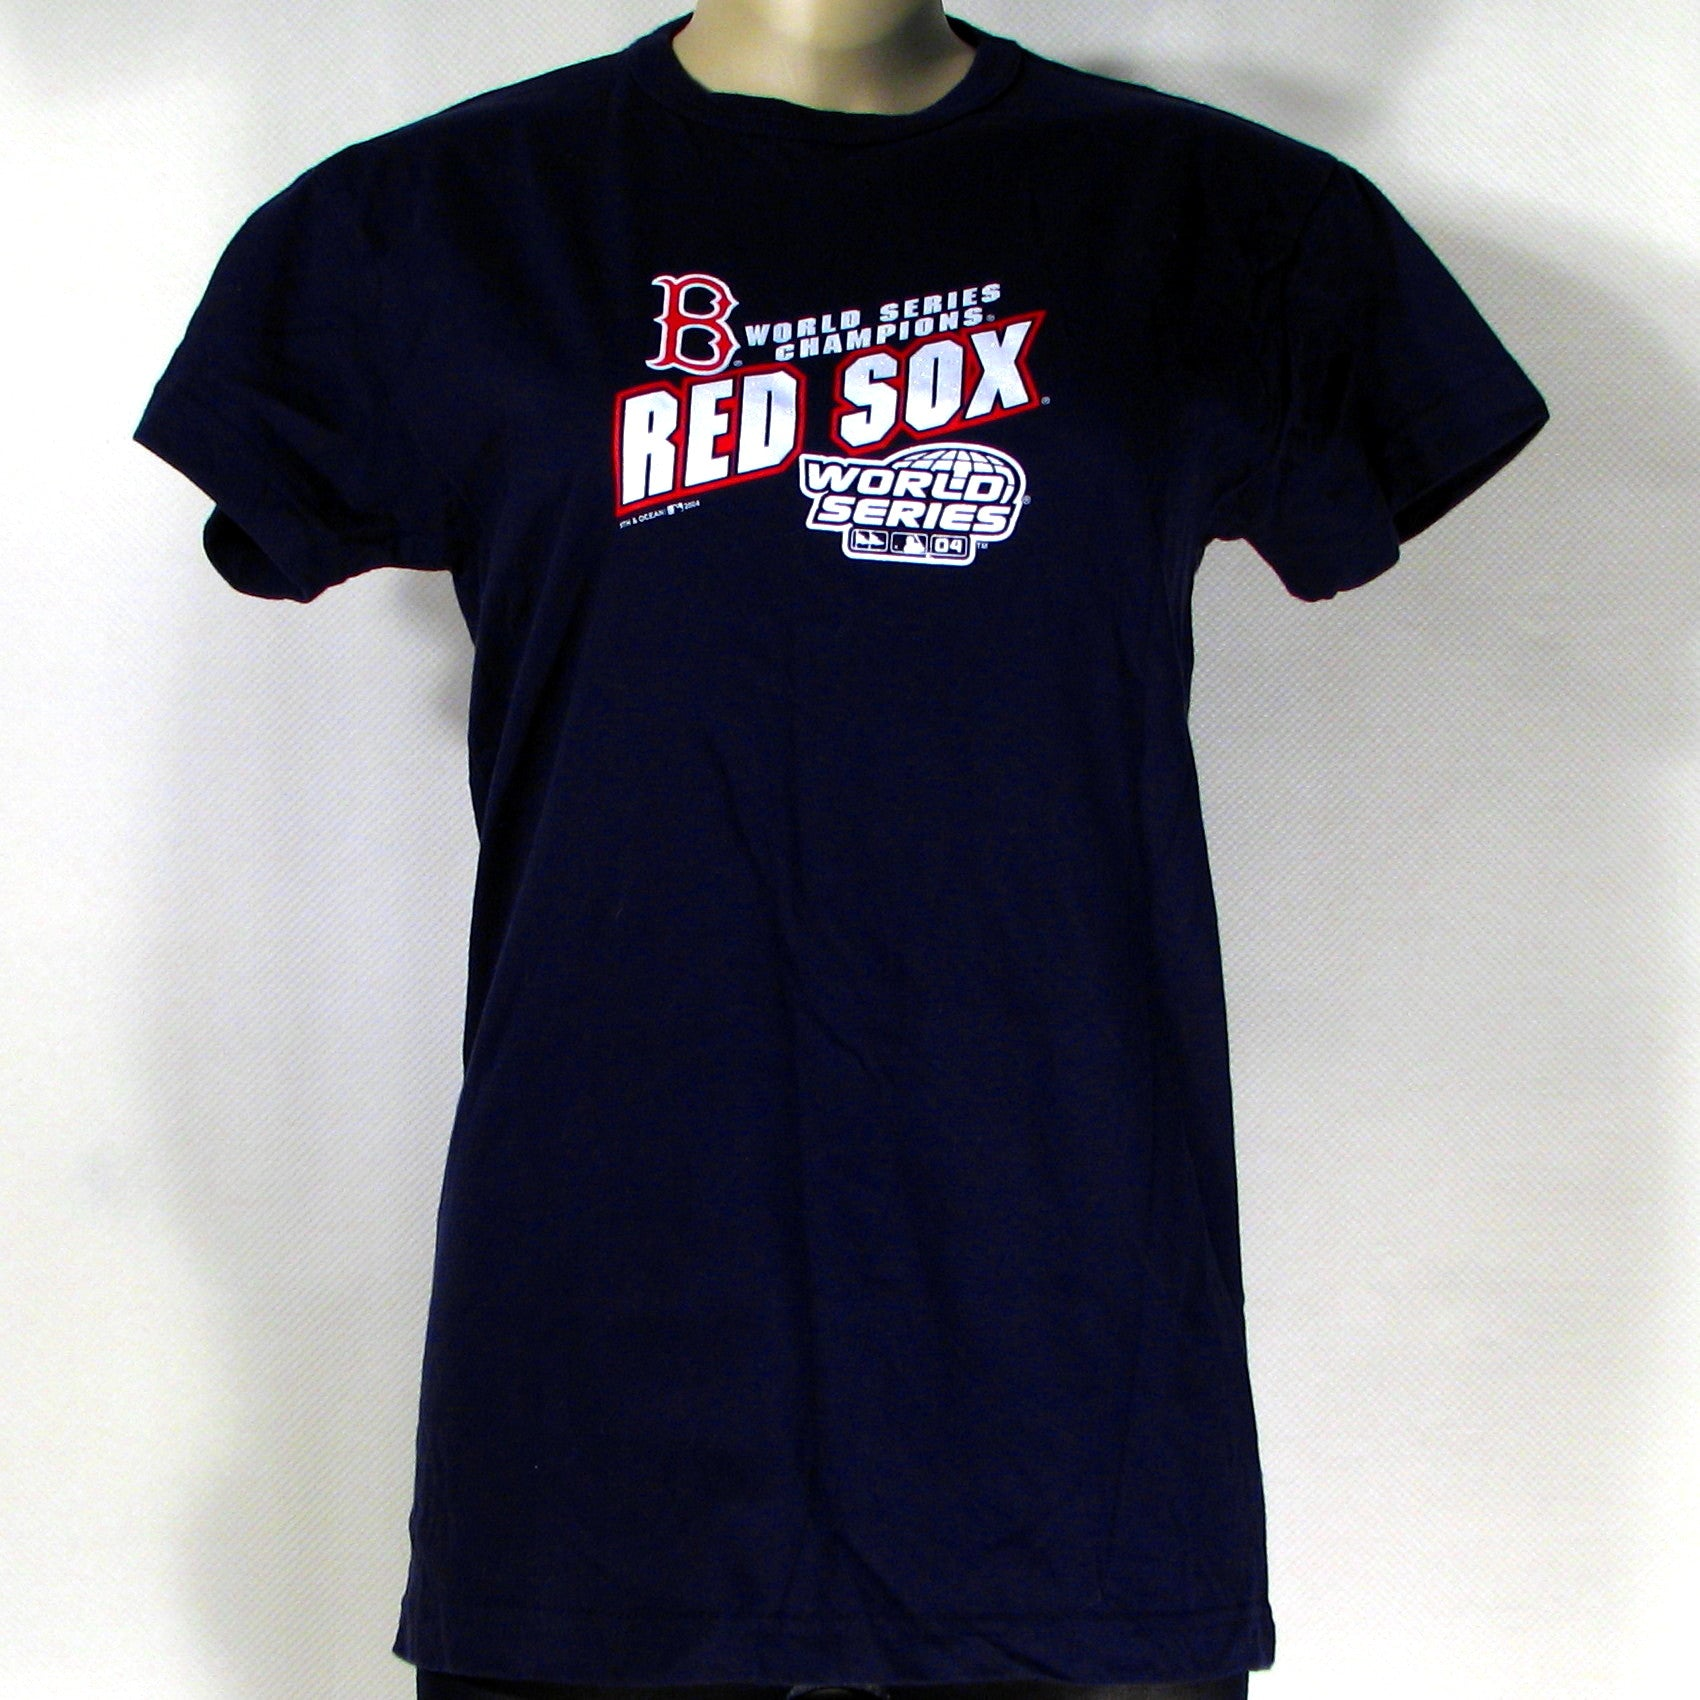 Boston Red Sox World Series Champs 2004 T-Shirt Womens